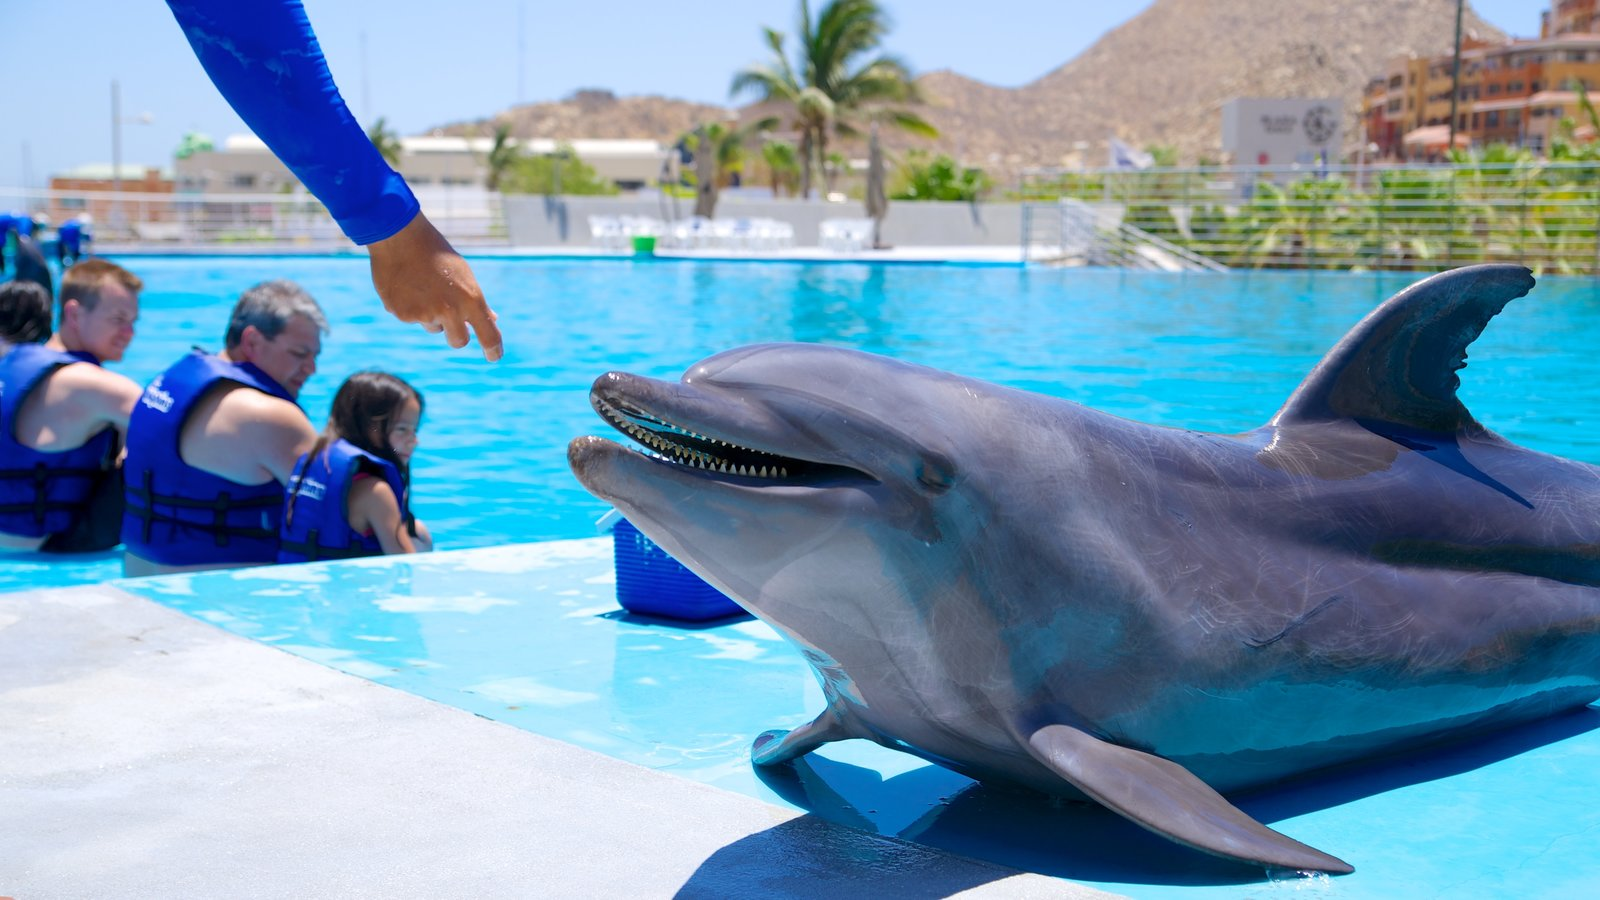 Cabo Dolphins featuring a water park and marine life